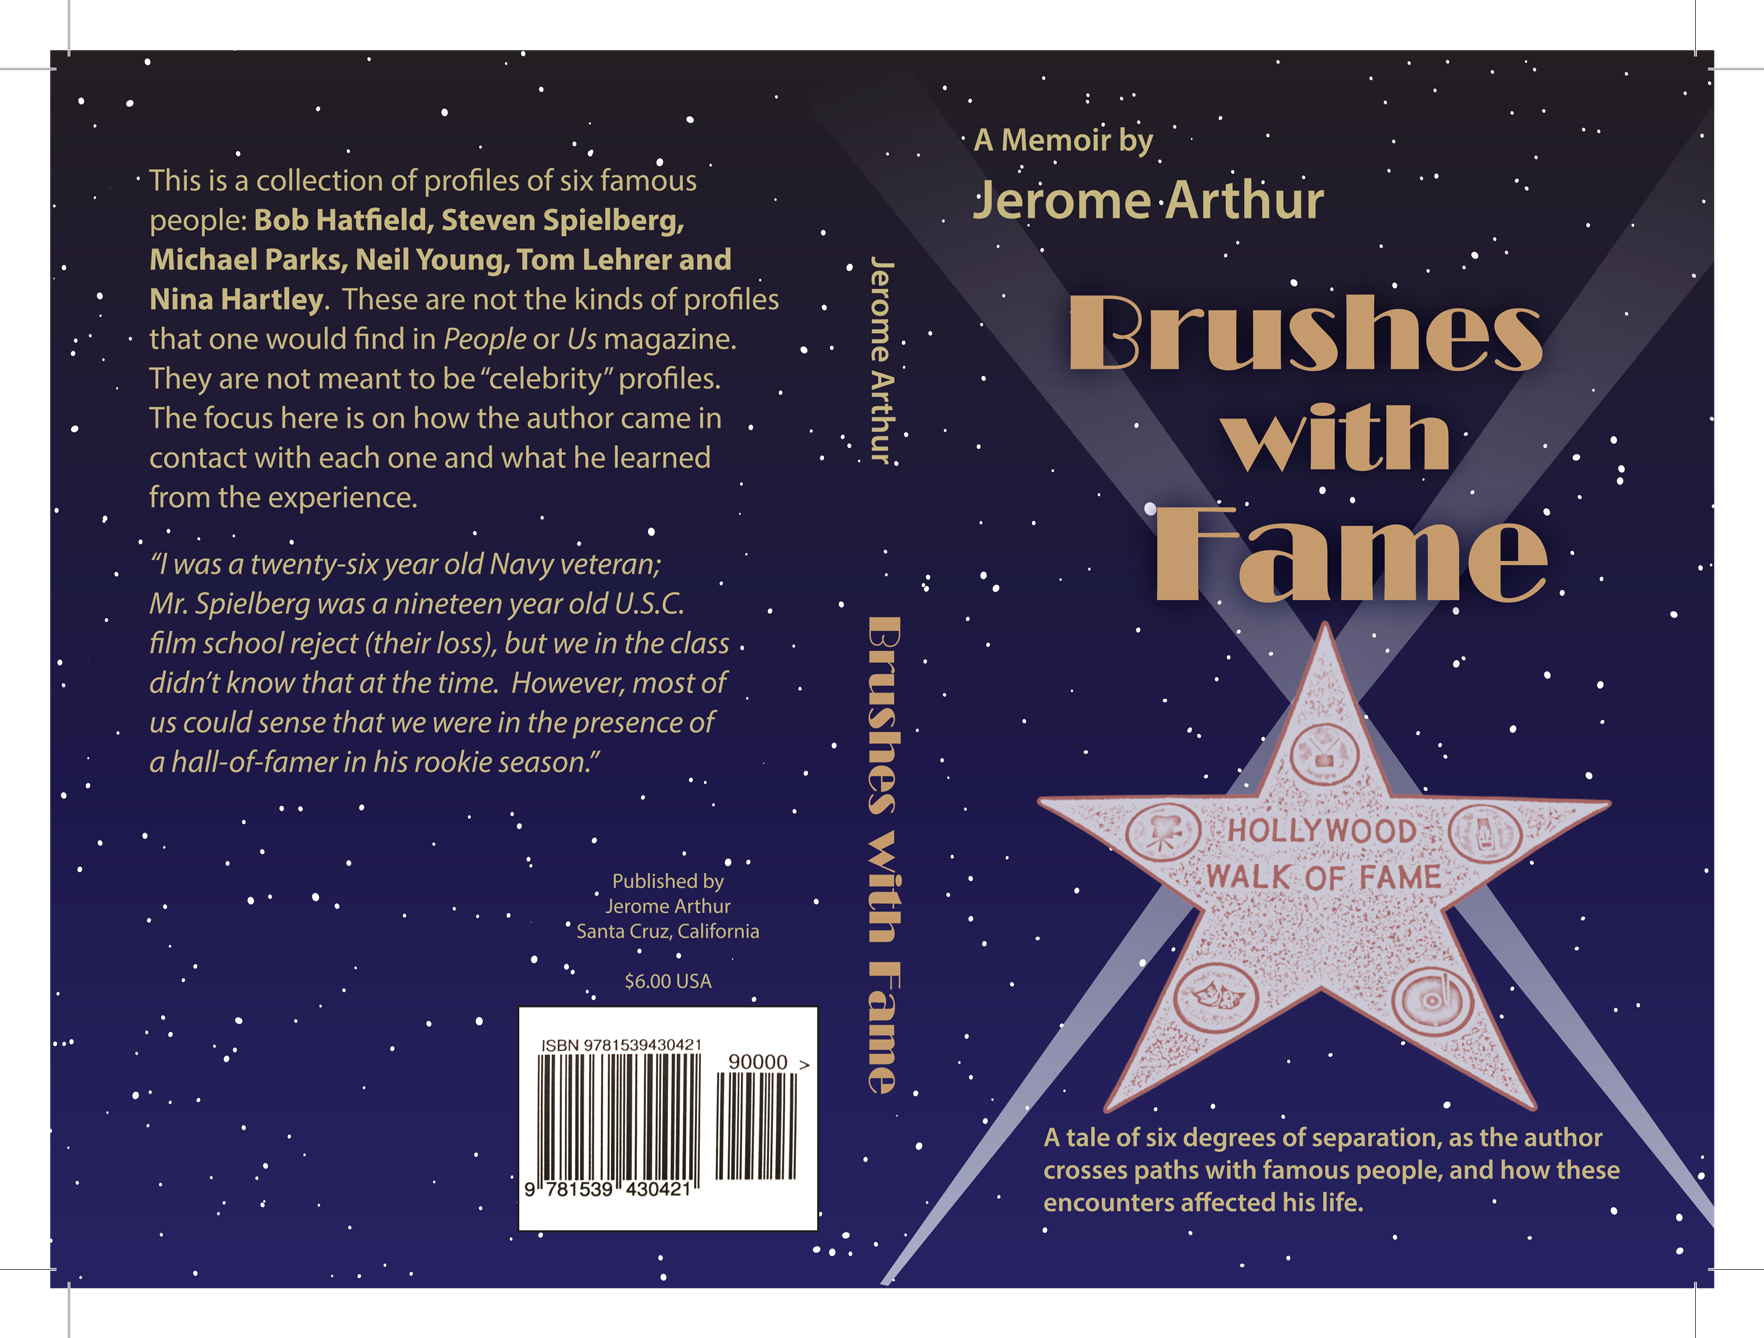 Brushes with Fame Cover Art